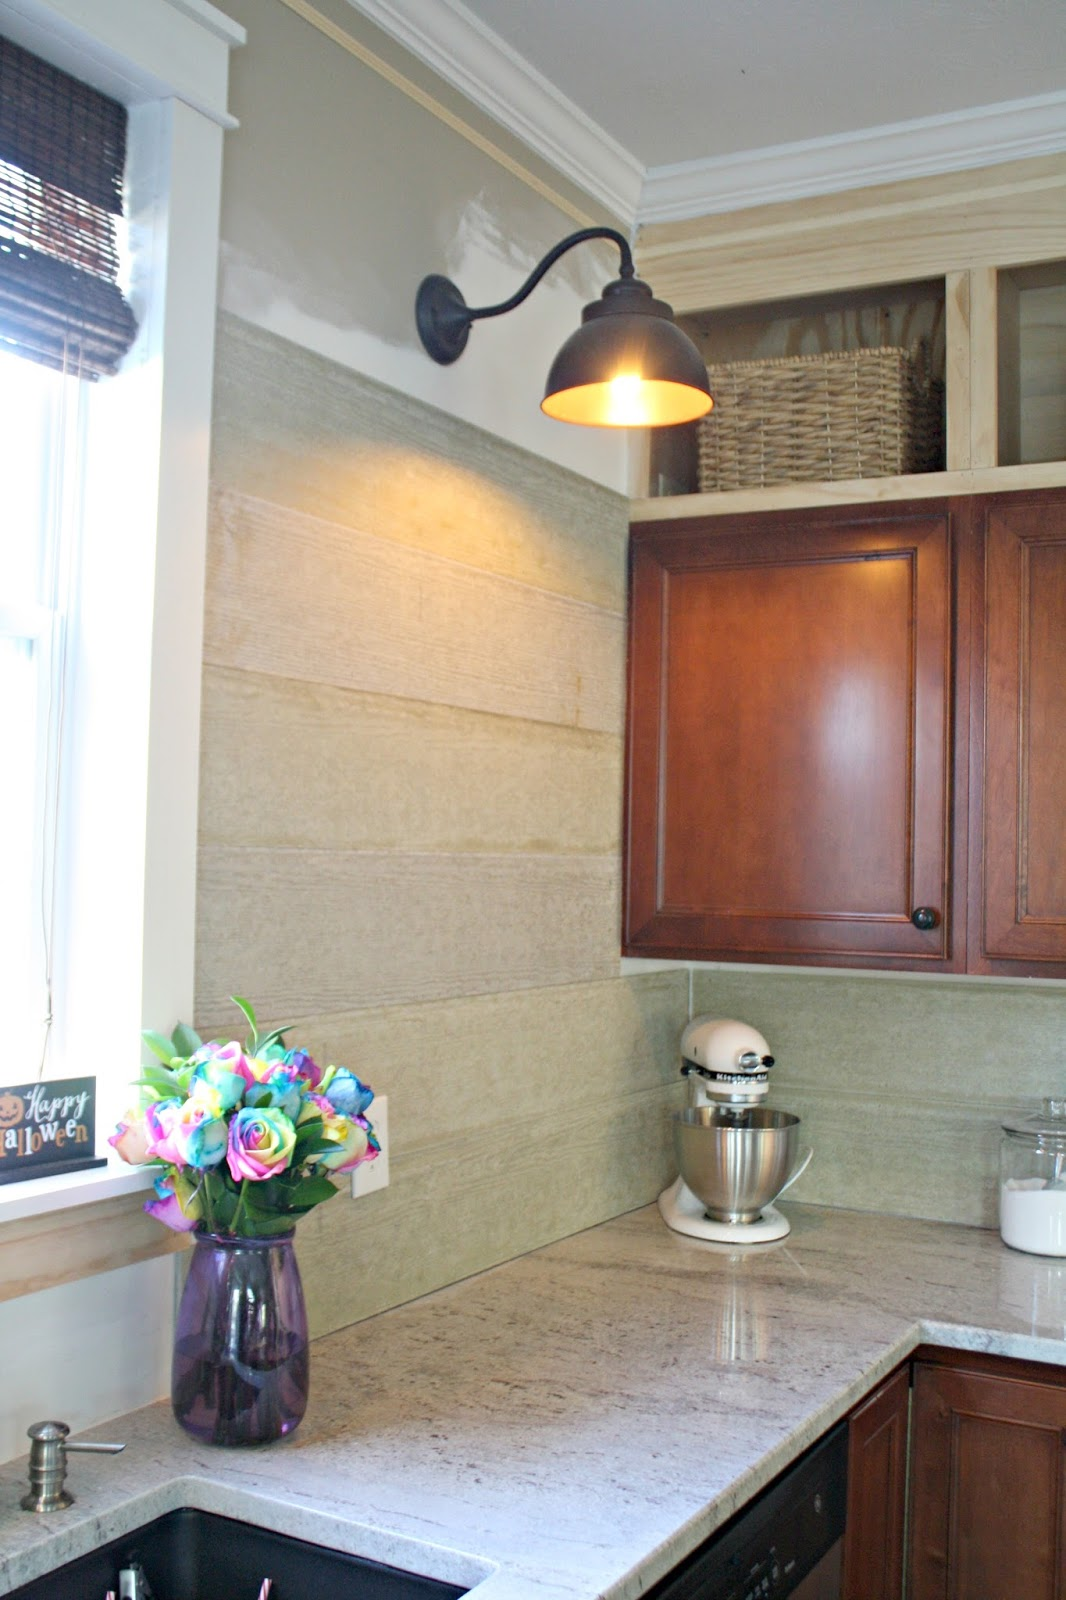 My unusual backsplash choice from thrifty decor chick fiber cement boards in kitchen dailygadgetfo Choice Image